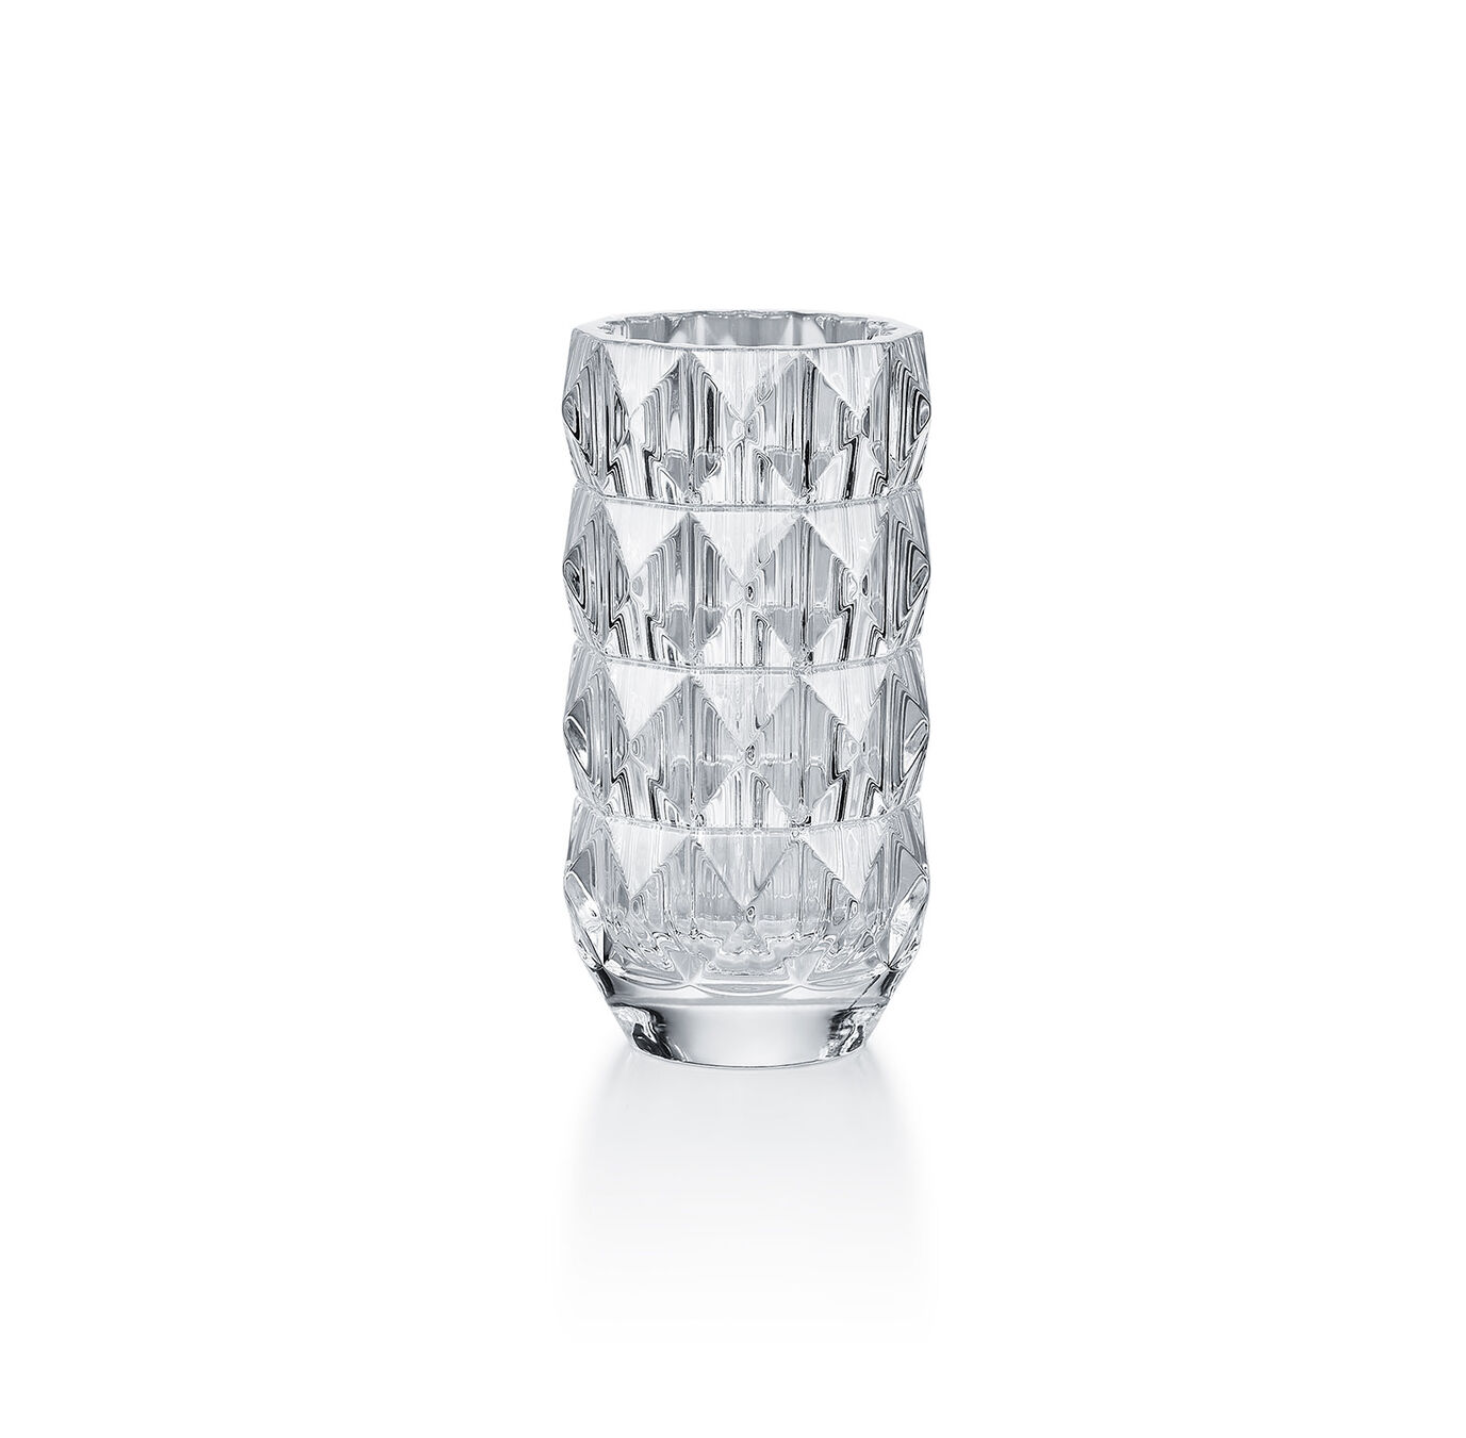 Baccarat Louxor Round Vase | Small